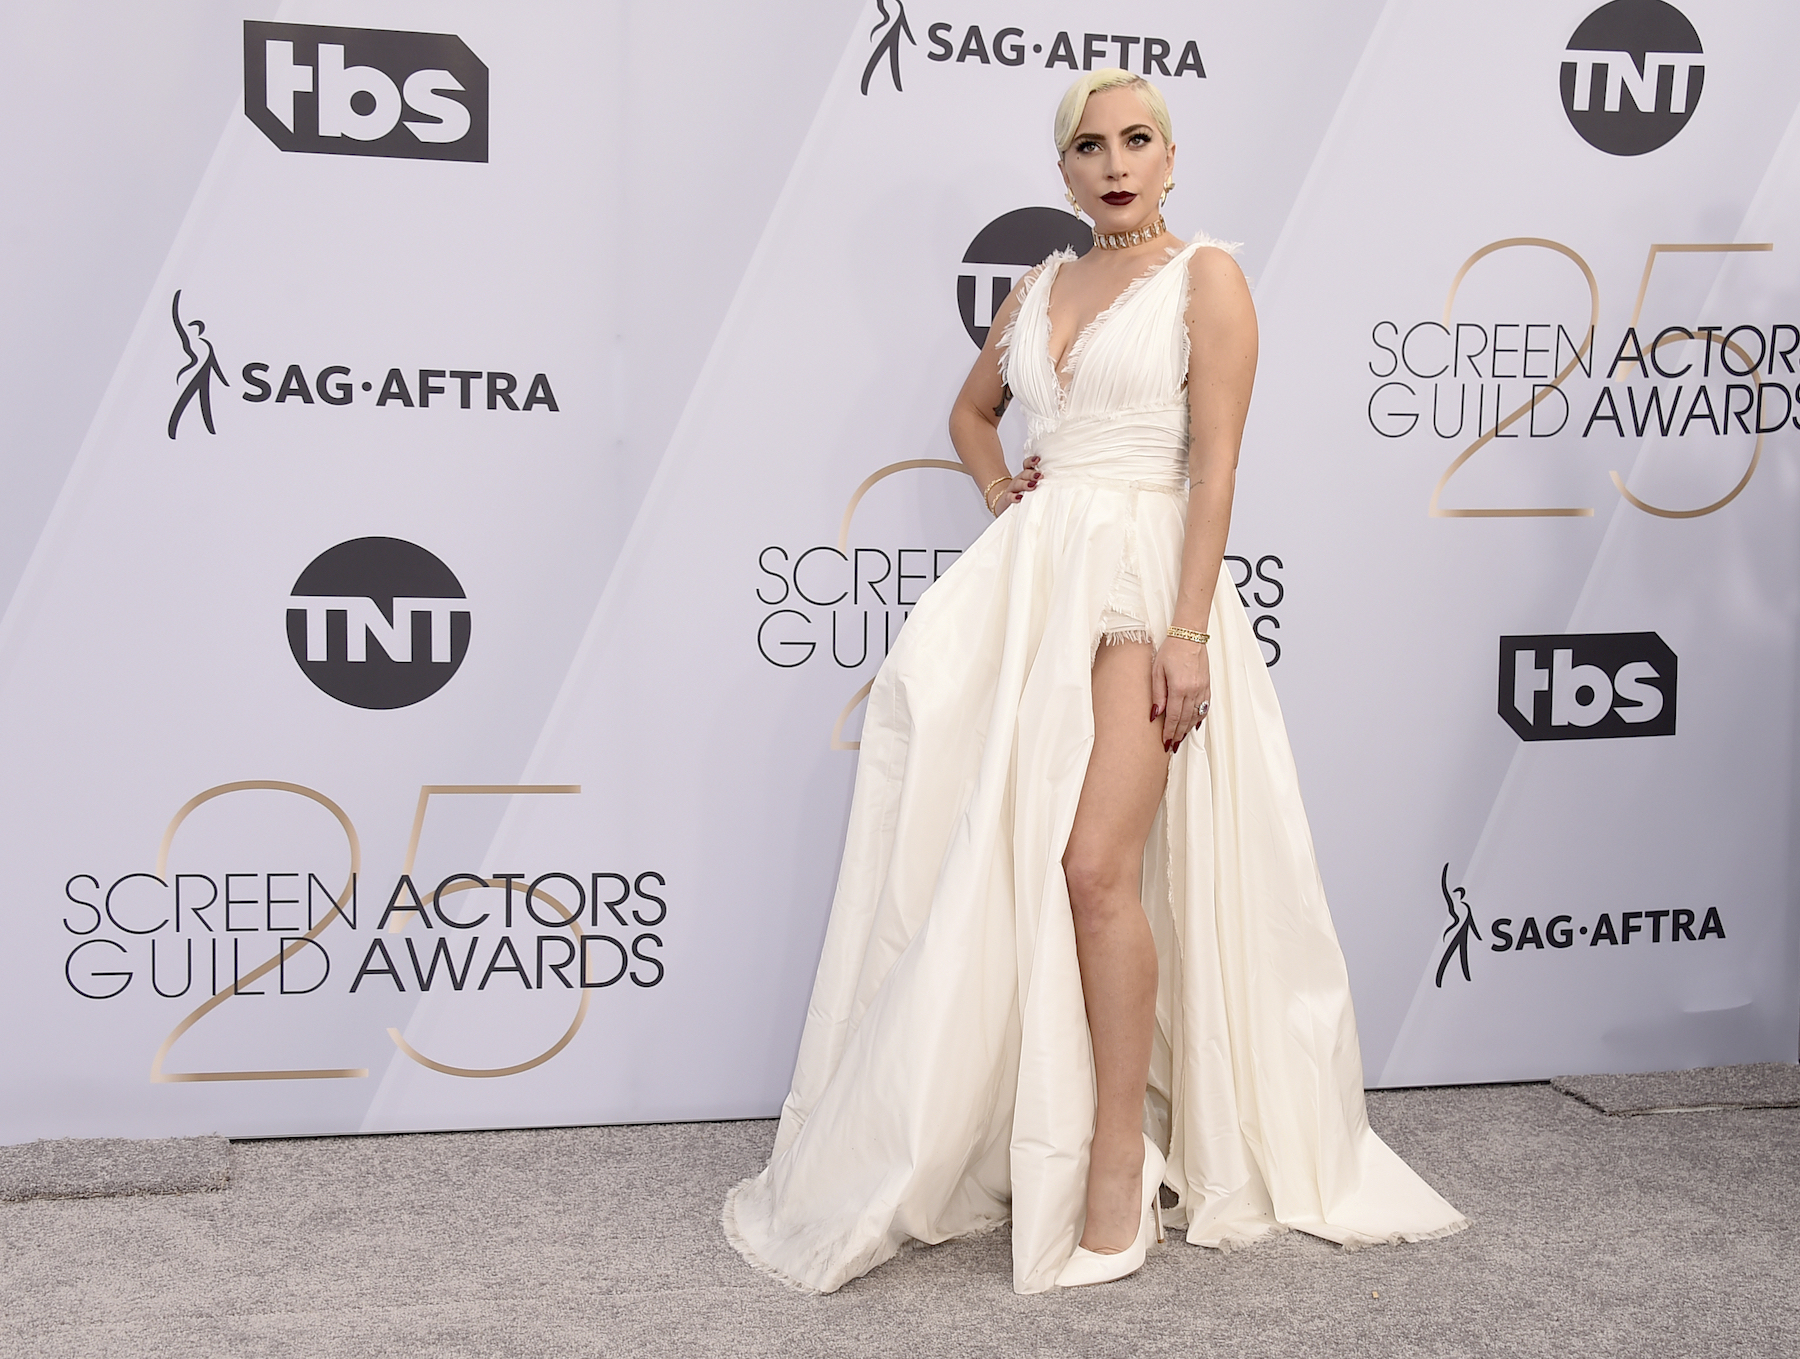 <div class='meta'><div class='origin-logo' data-origin='AP'></div><span class='caption-text' data-credit='Jordan Strauss/Invision/AP'>Lady Gaga arrives at the 25th annual Screen Actors Guild Awards at the Shrine Auditorium & Expo Hall on Sunday, Jan. 27, 2019, in Los Angeles.</span></div>